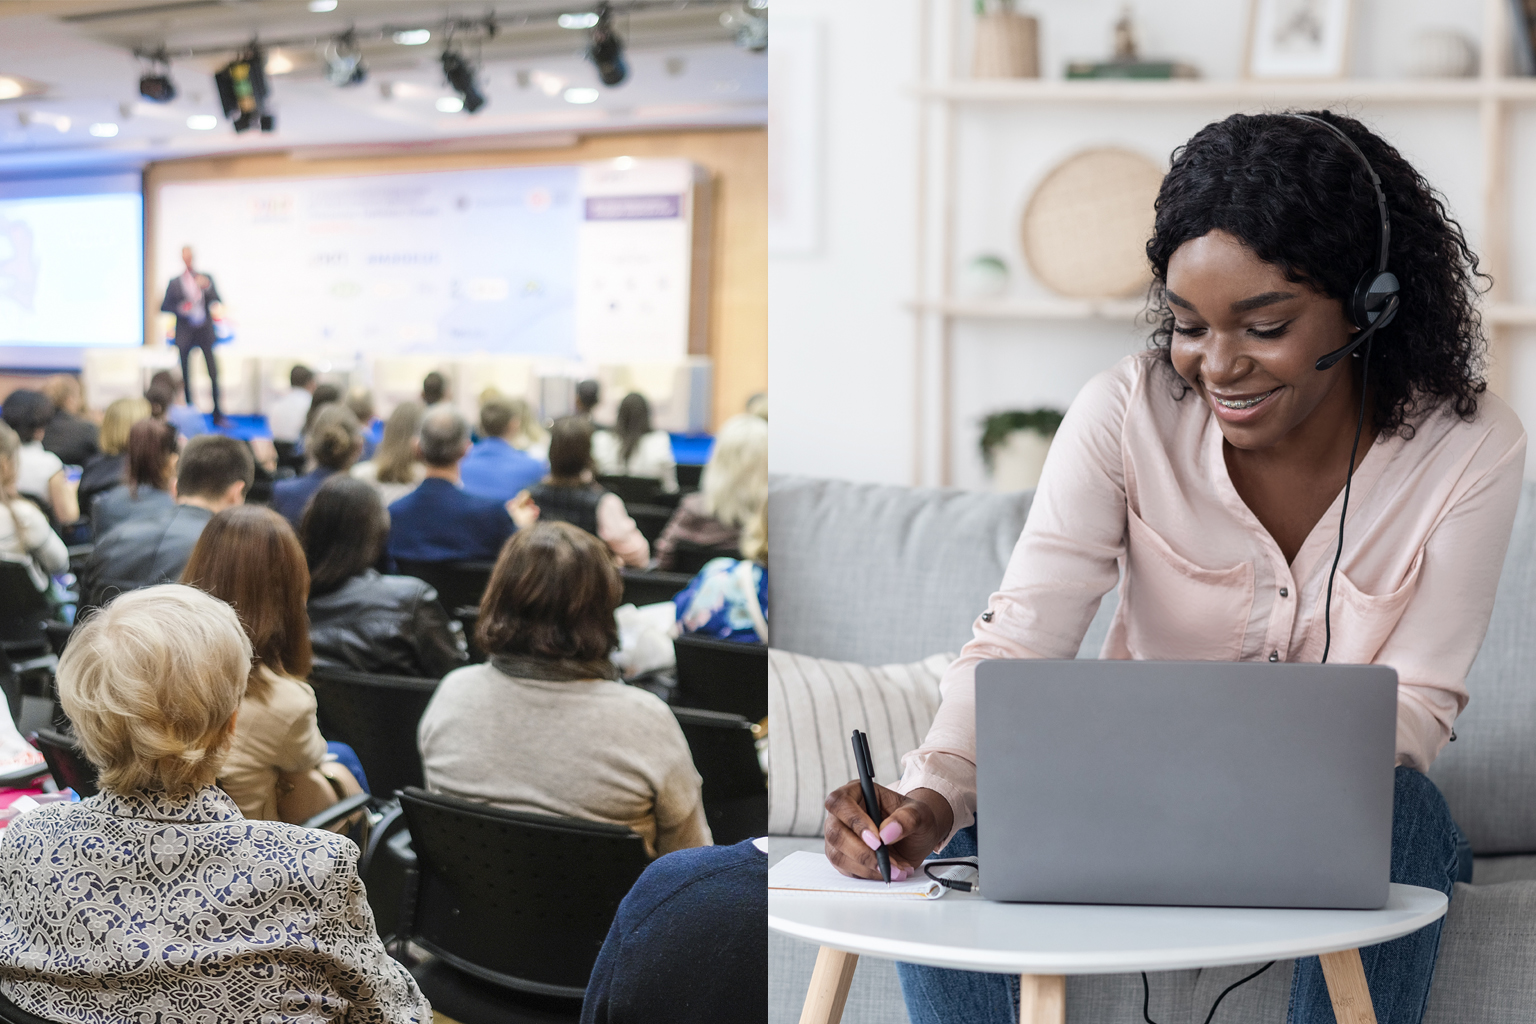 Two images: in-person conference audience and speaker (left) and woman attending at-home, taking notes (right)